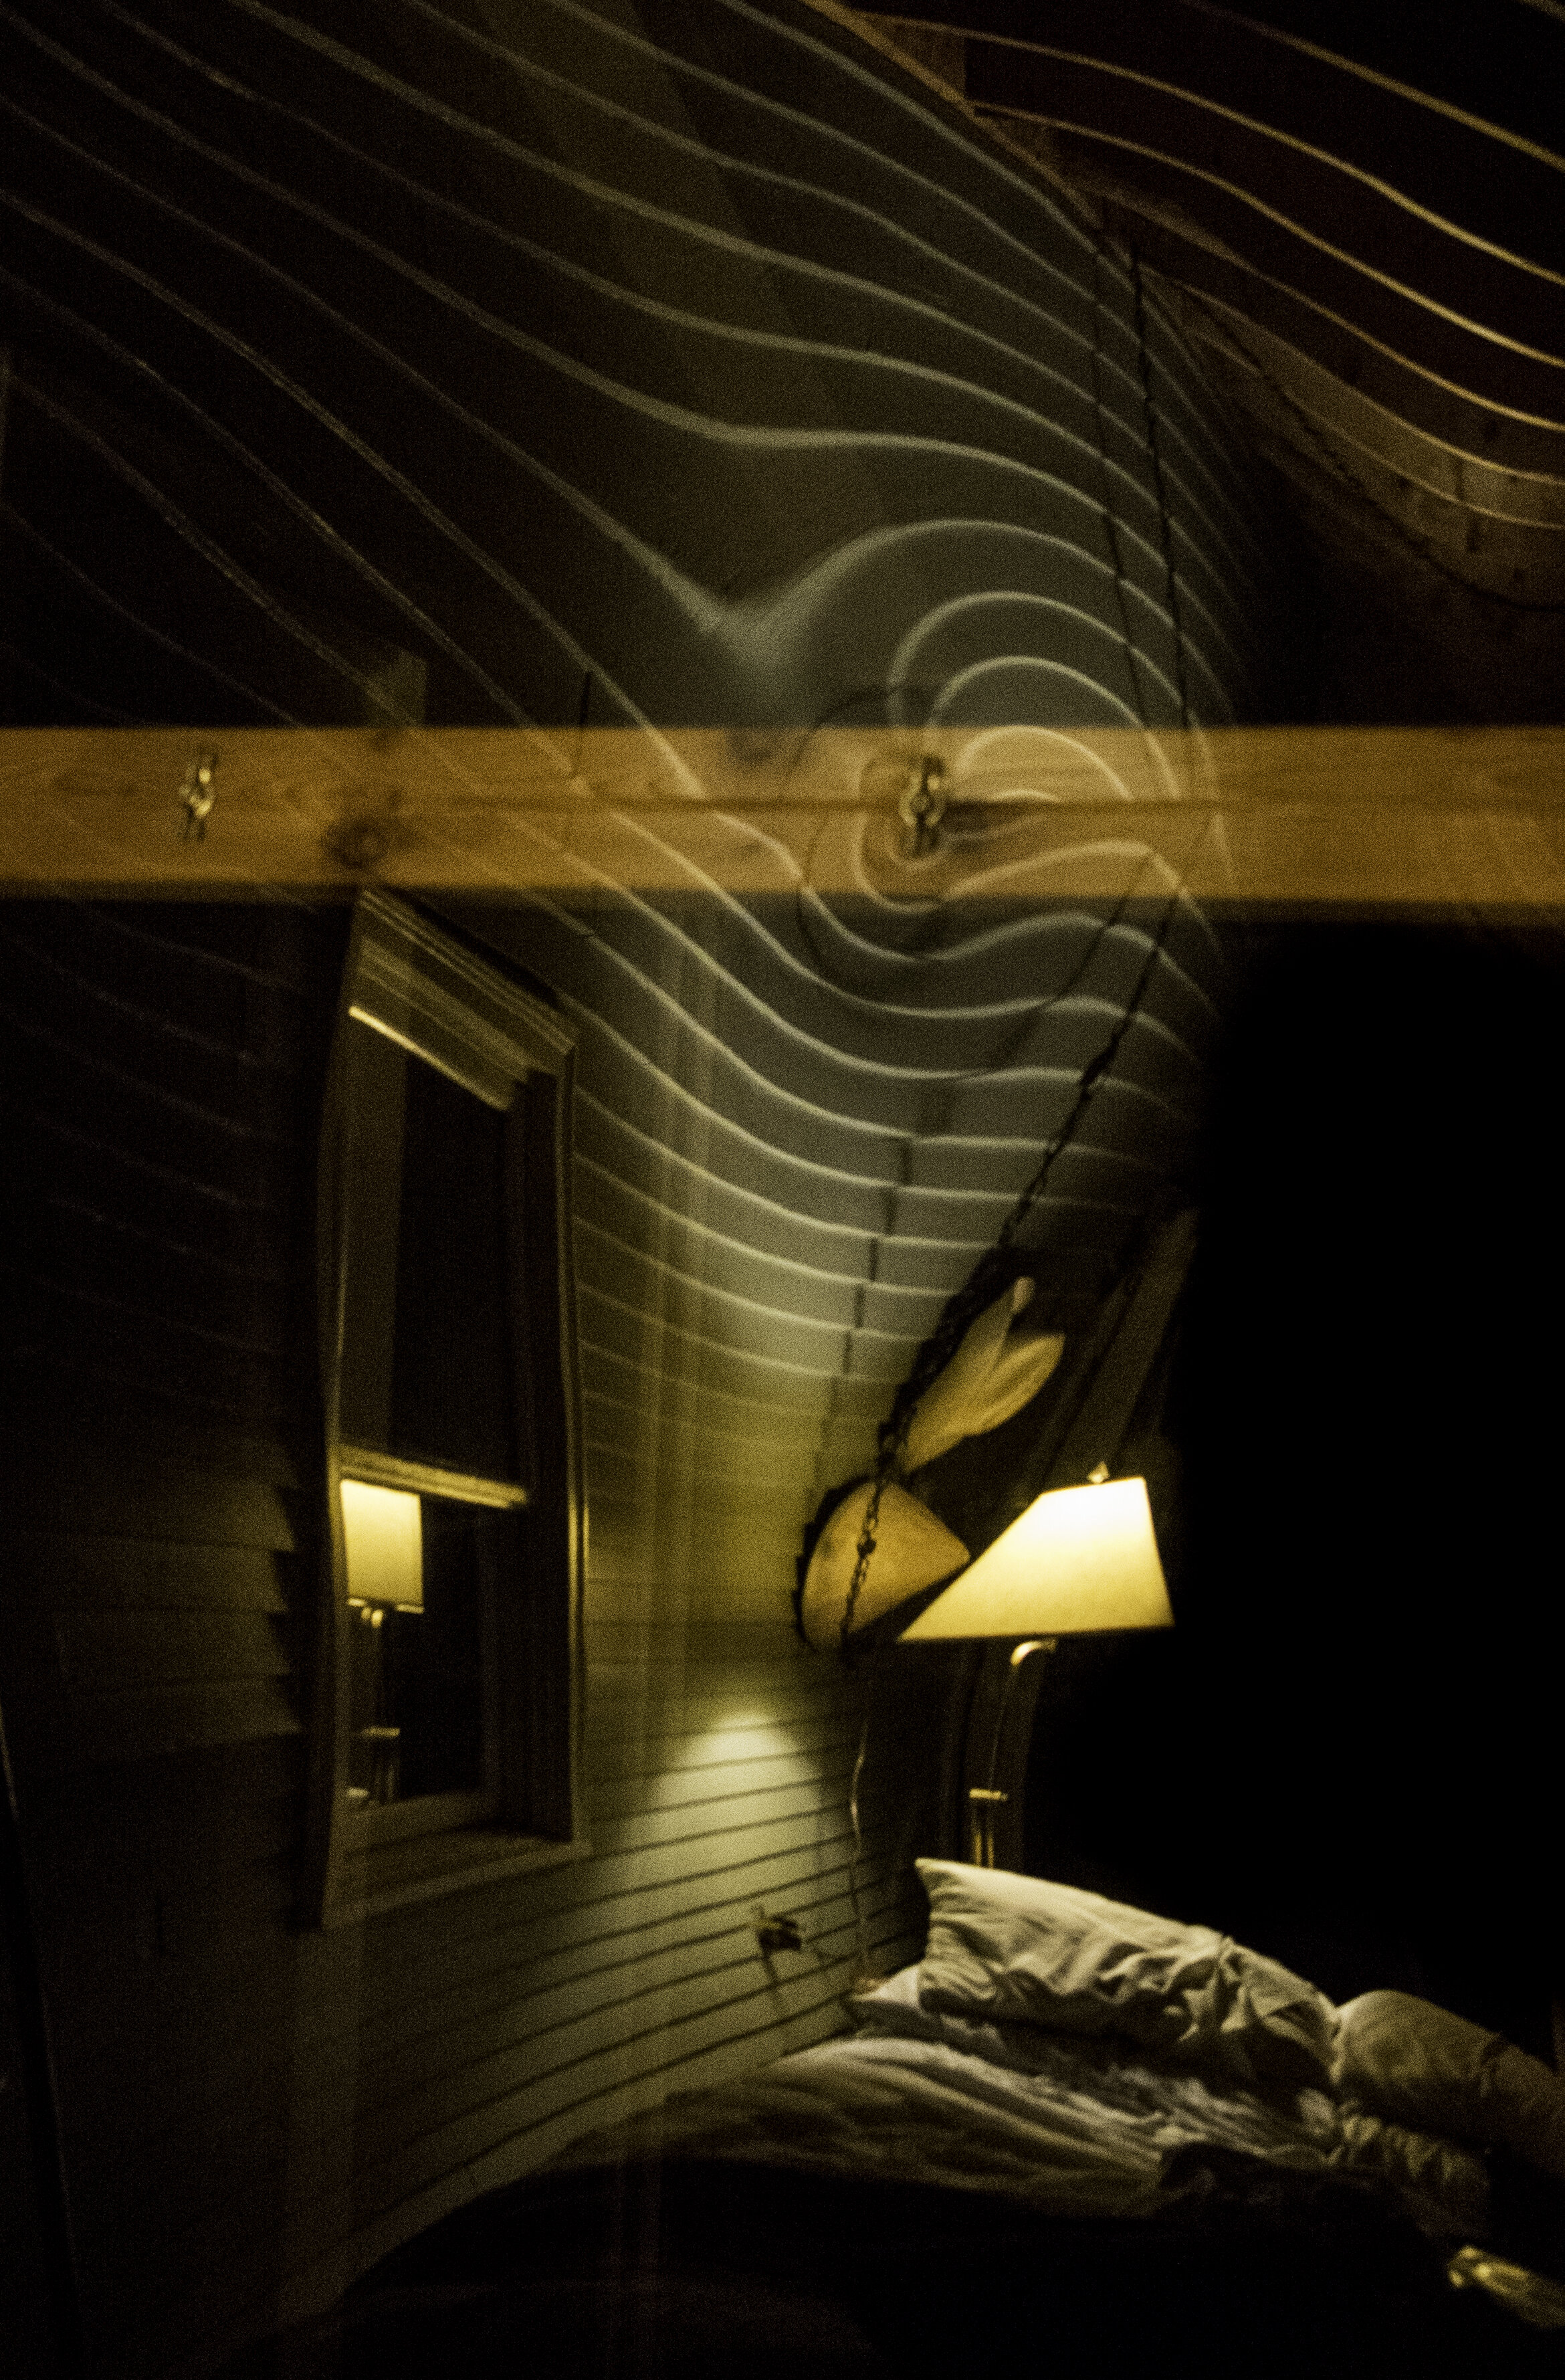 _23 Dream curve, our back porch, Middlesex, Vermont.jpg